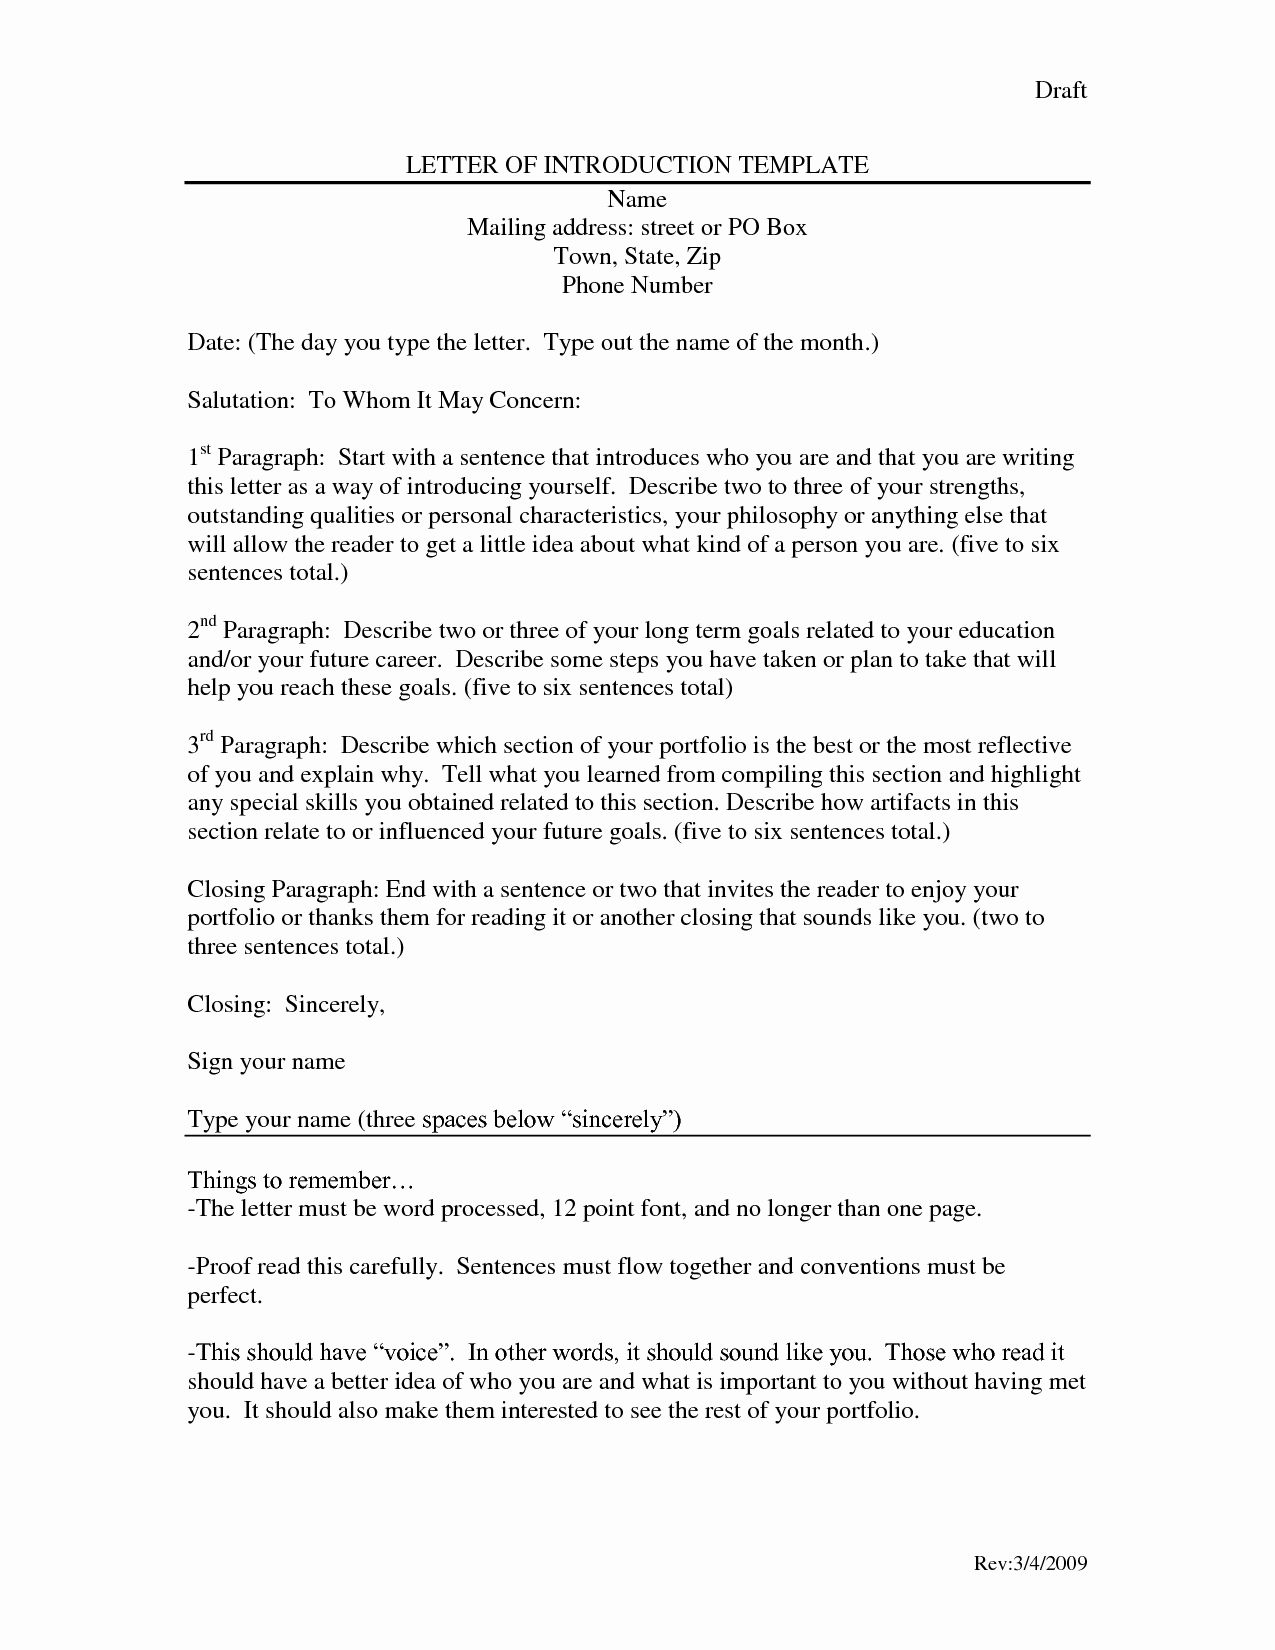 Letter Of Introduction Template Fresh Letter Introduction Template Dancingmermaid Yfzce92i Introduction Letter Letter To Future Self Lettering